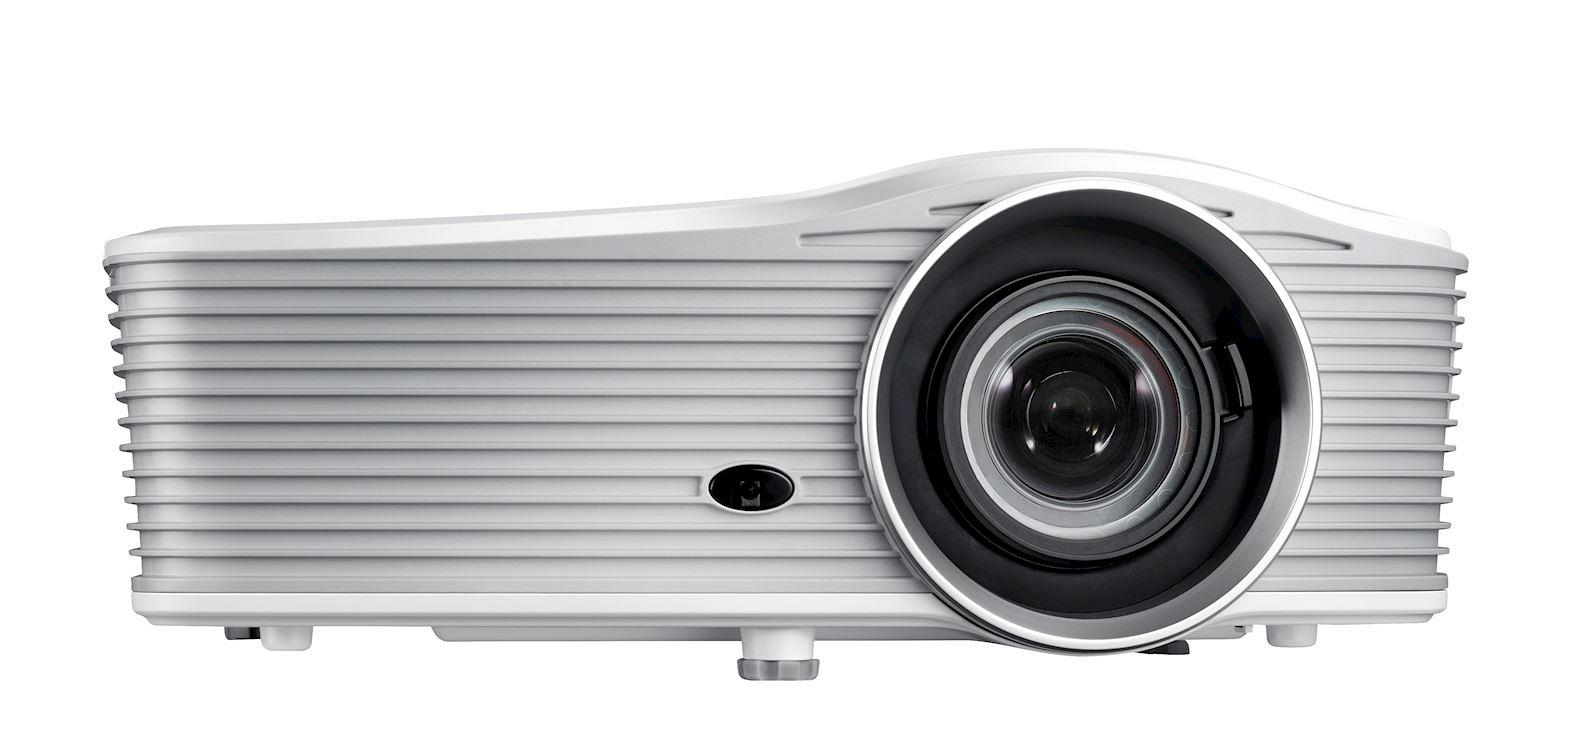 OPTOMA WU515TST WUXGA [16:10] PROJECTOR WITH 5500 LUMENS